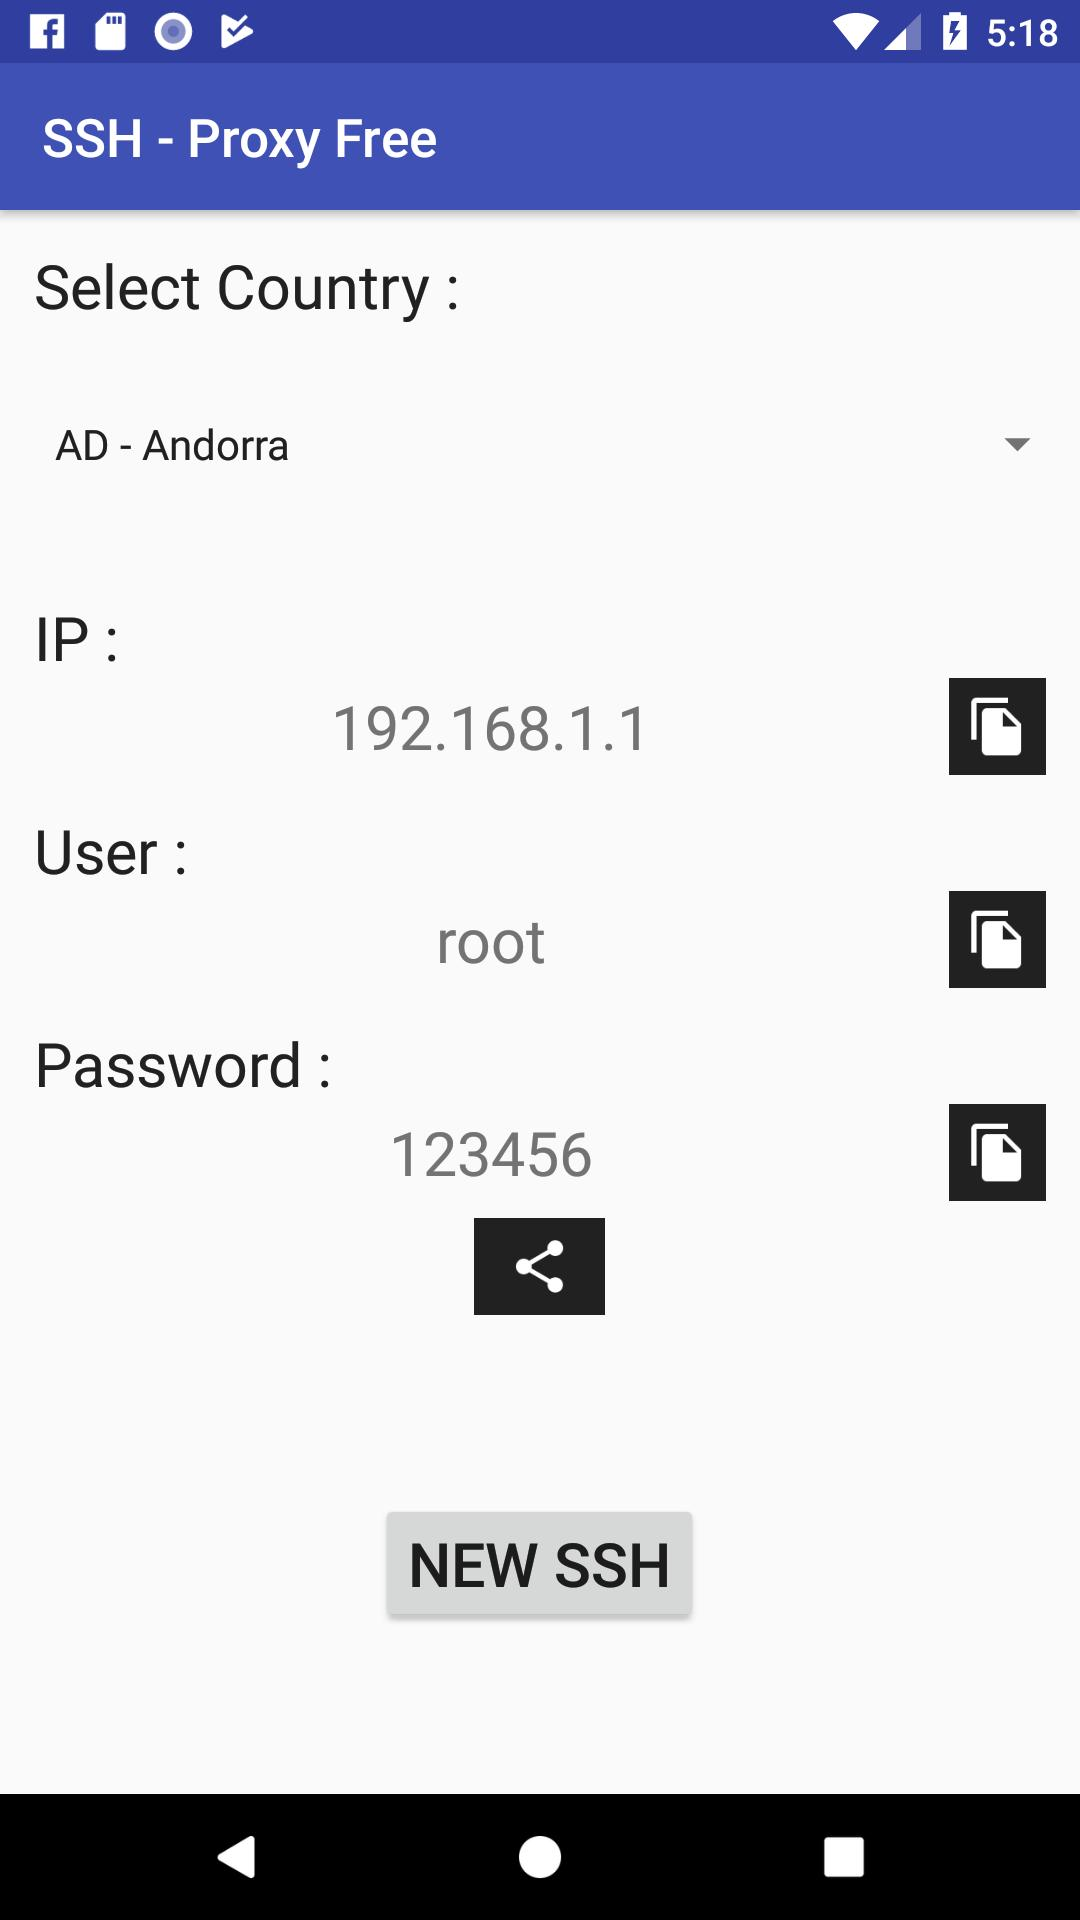 SSH - Vip IP - Proxy Free for Android - APK Download